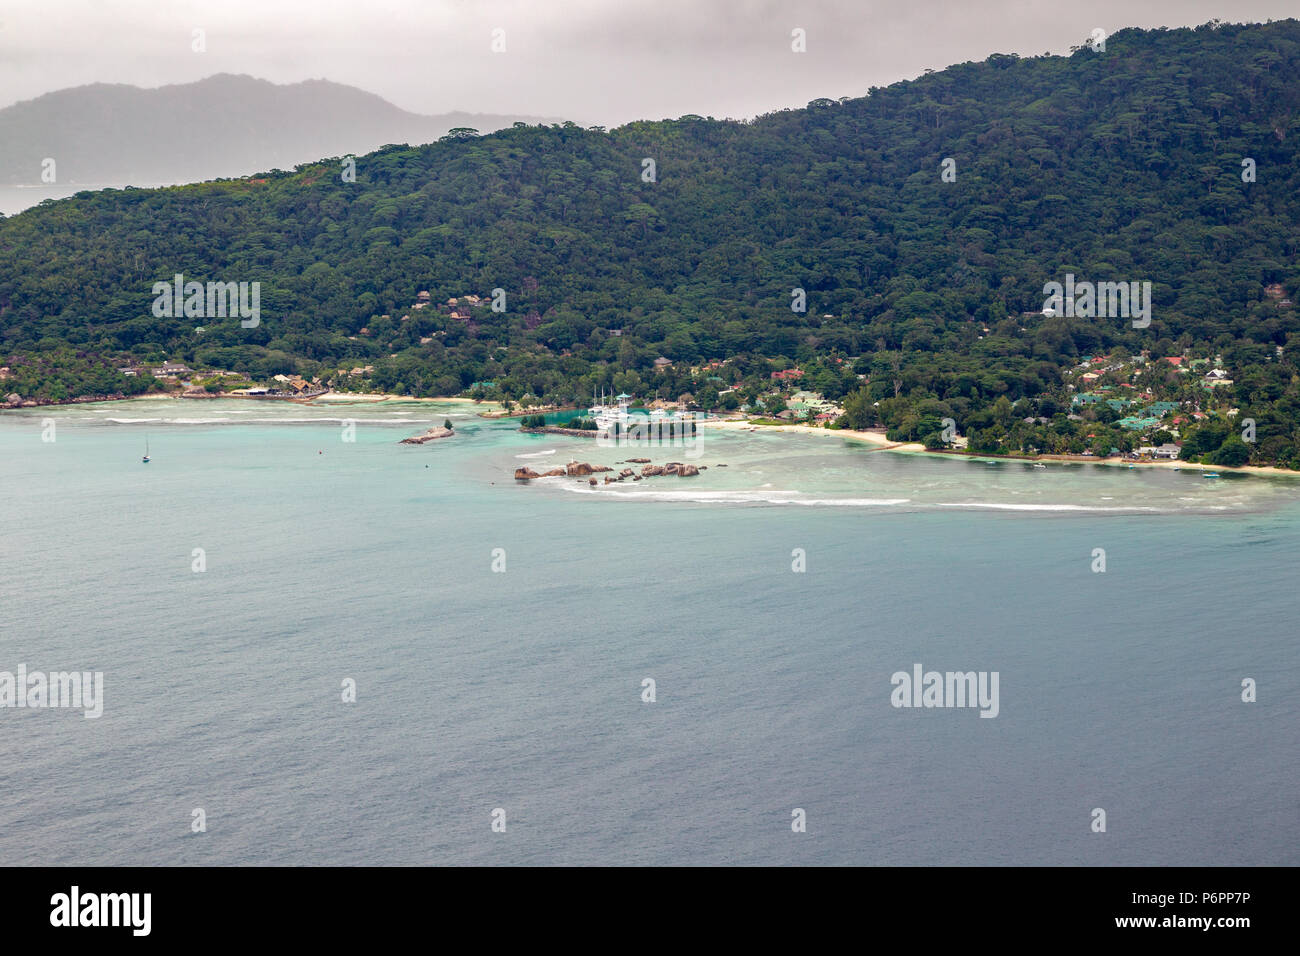 Aerial view of the marina of La Digue, Seychelles in the Indian Ocean. - Stock Image